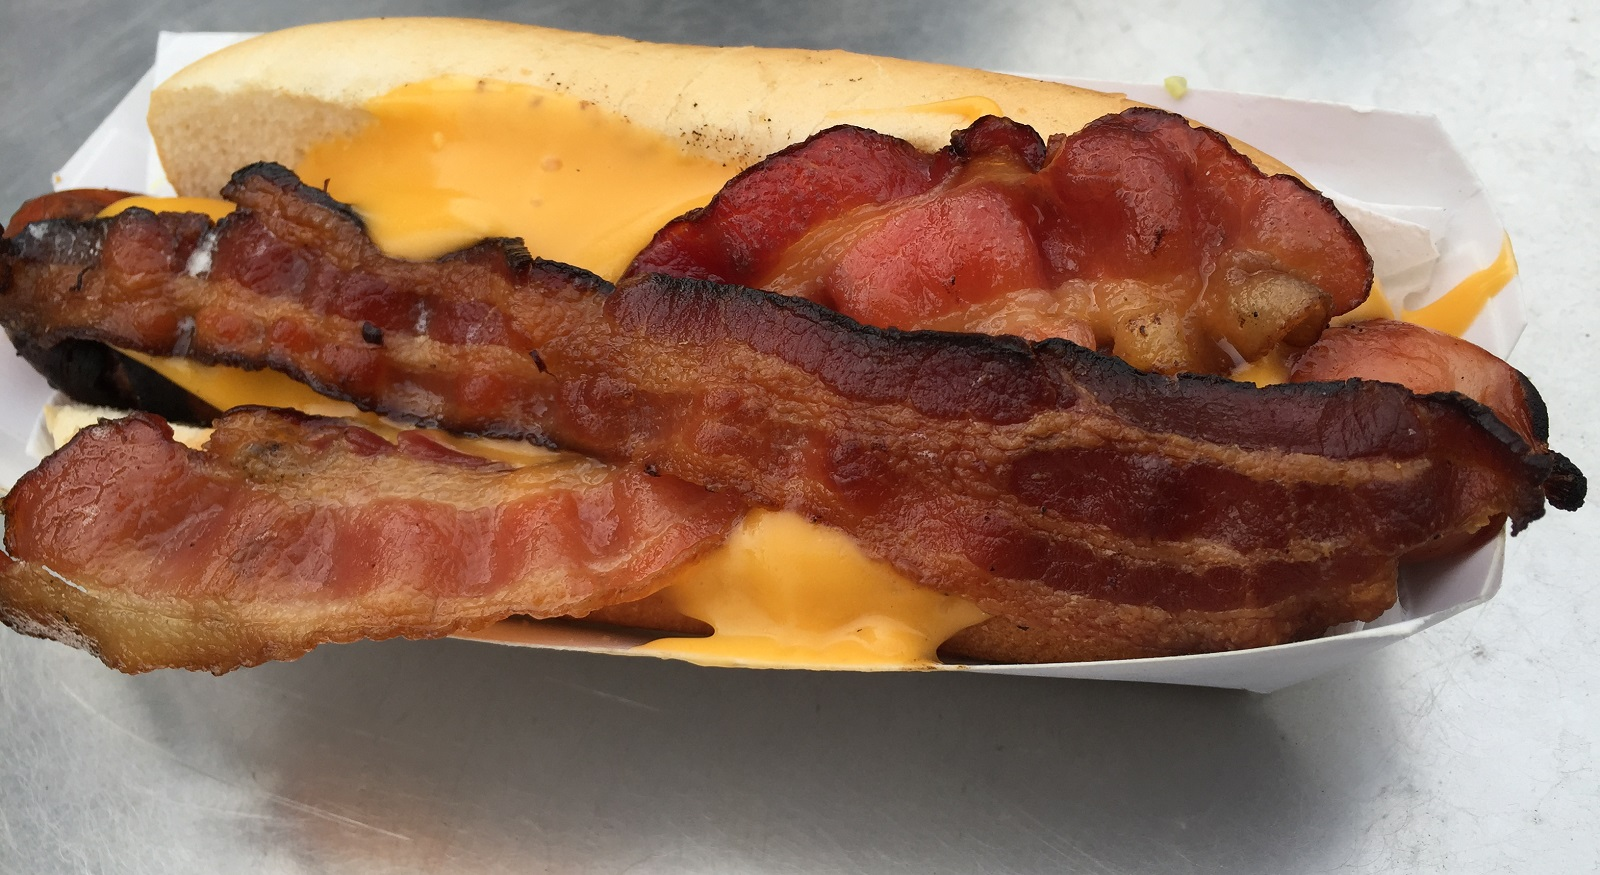 The bacon and cheese hot dog from Ted's Truck. (Ben Tsujimoto/Buffalo News file photo)